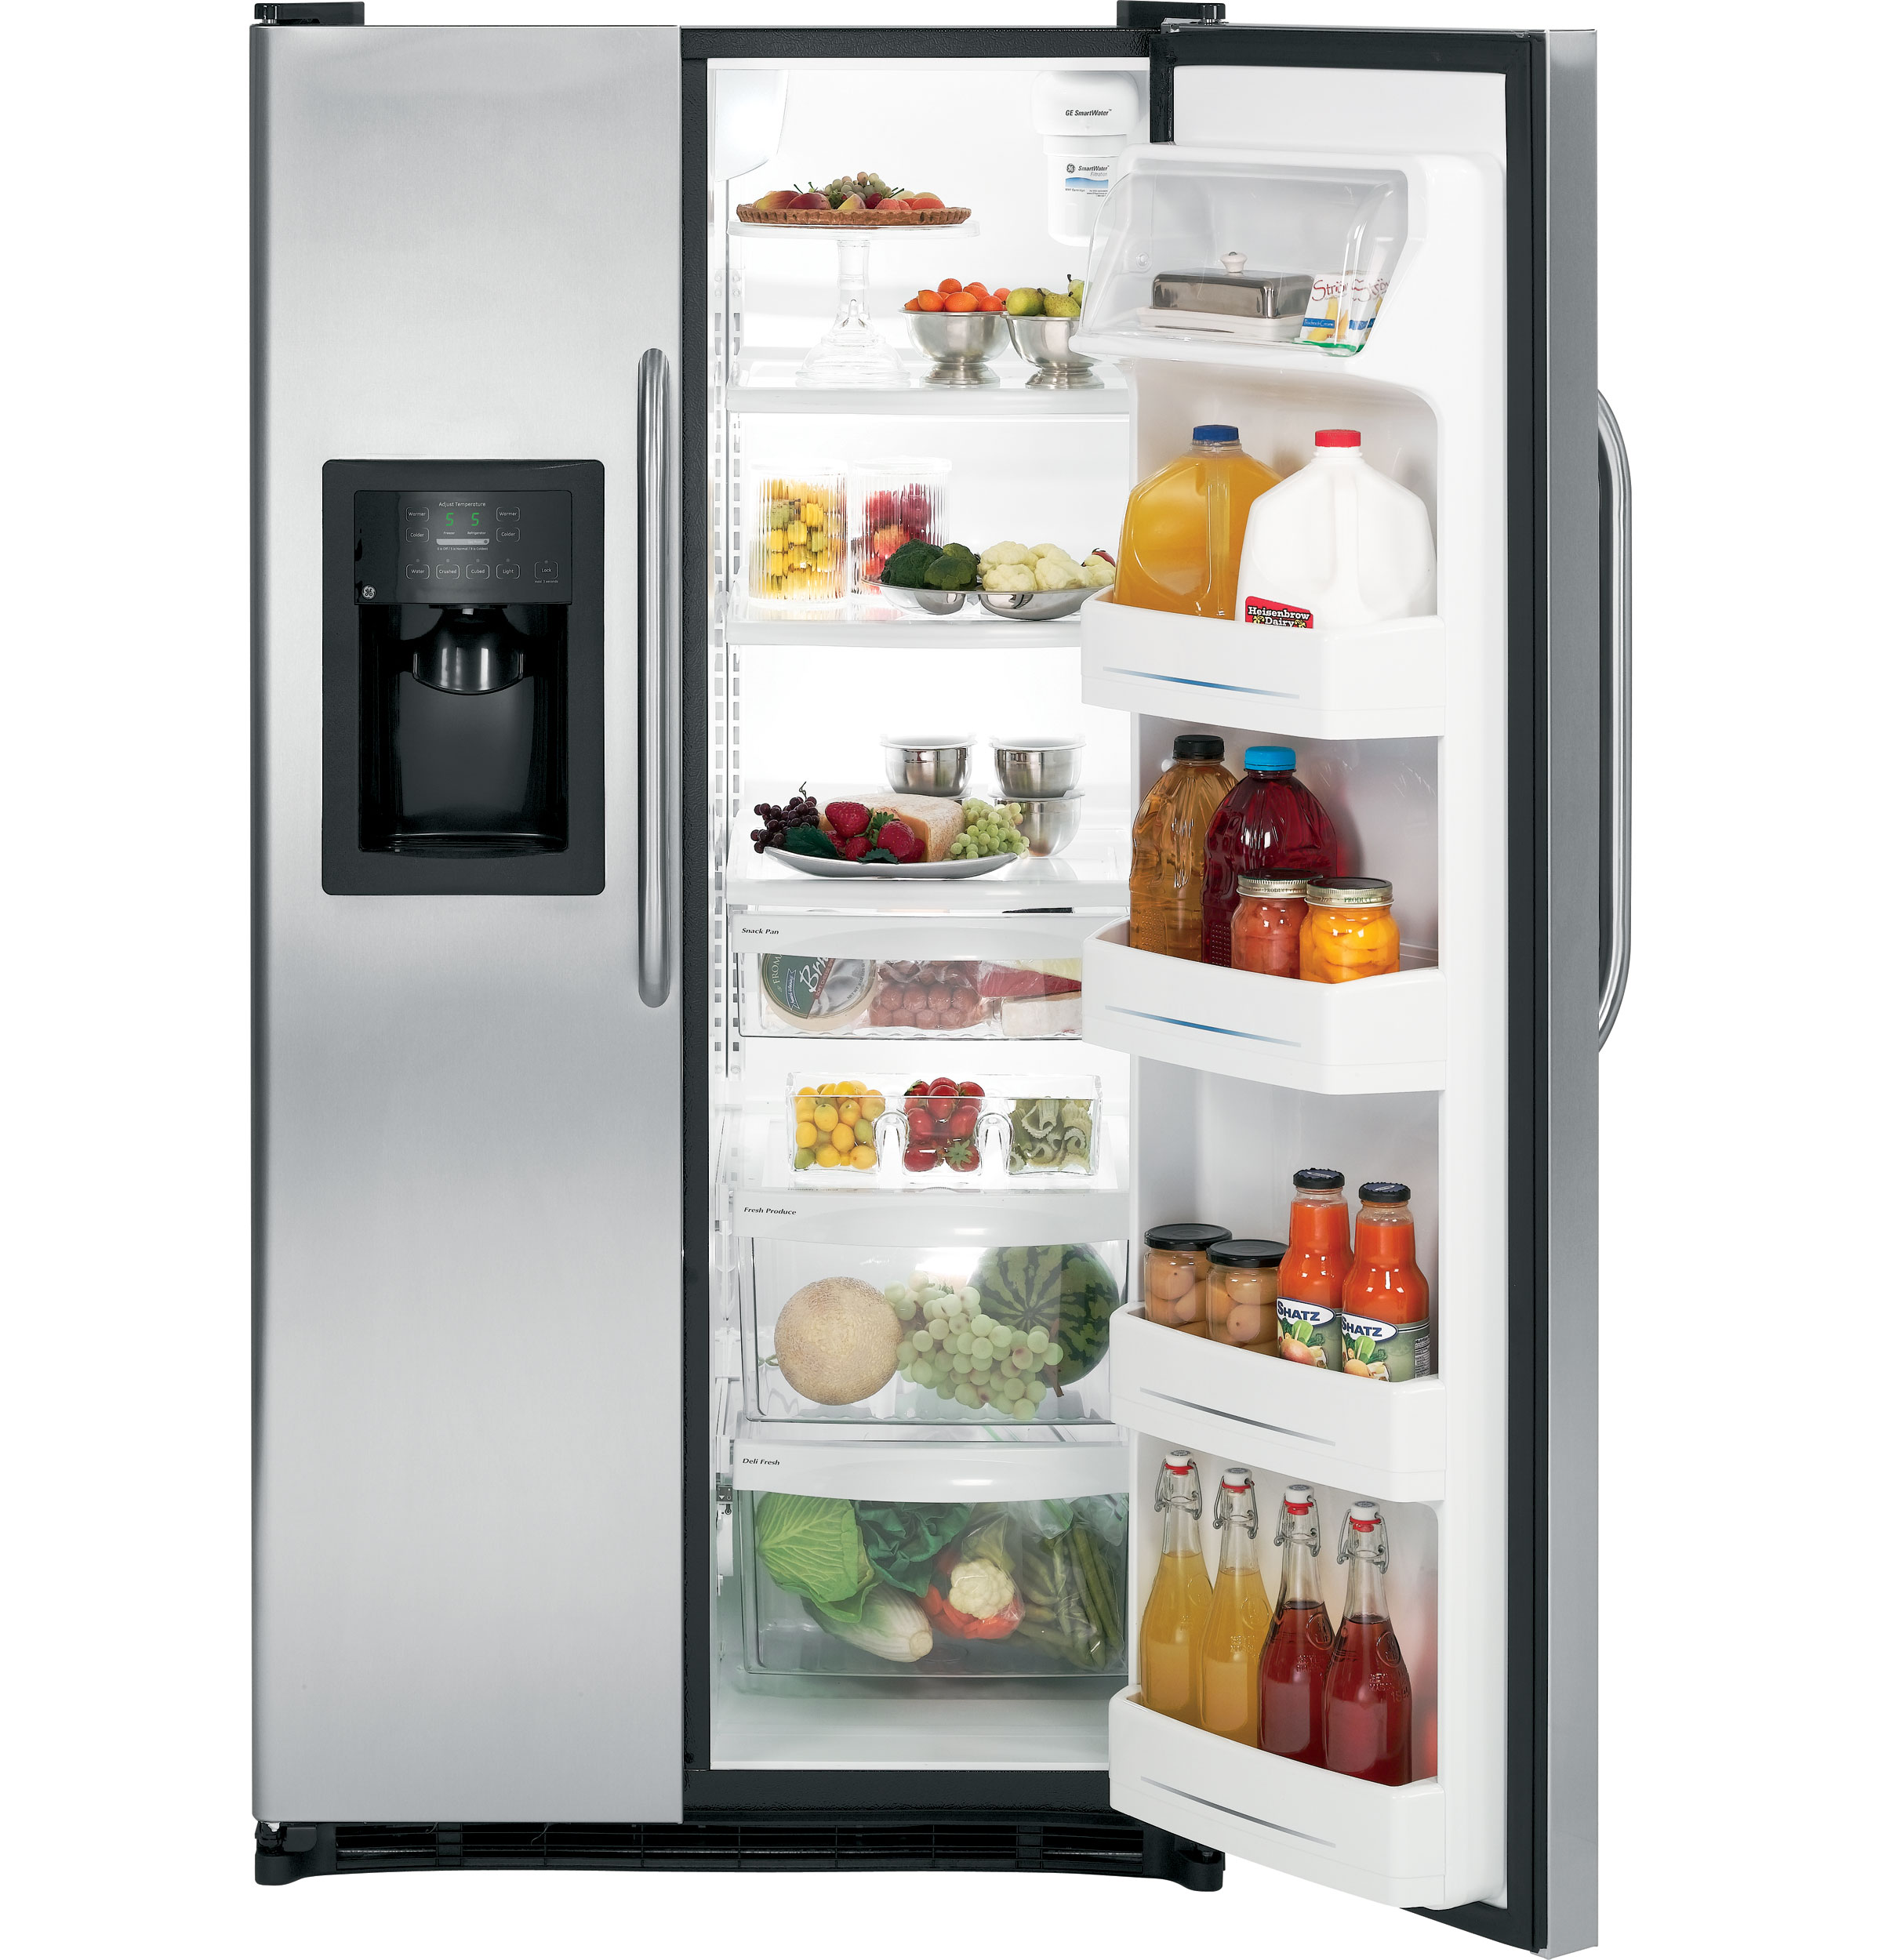 Ge Profile Performance Gear Energy Starar 253 Cu Ft Side By Side Refrigerator With